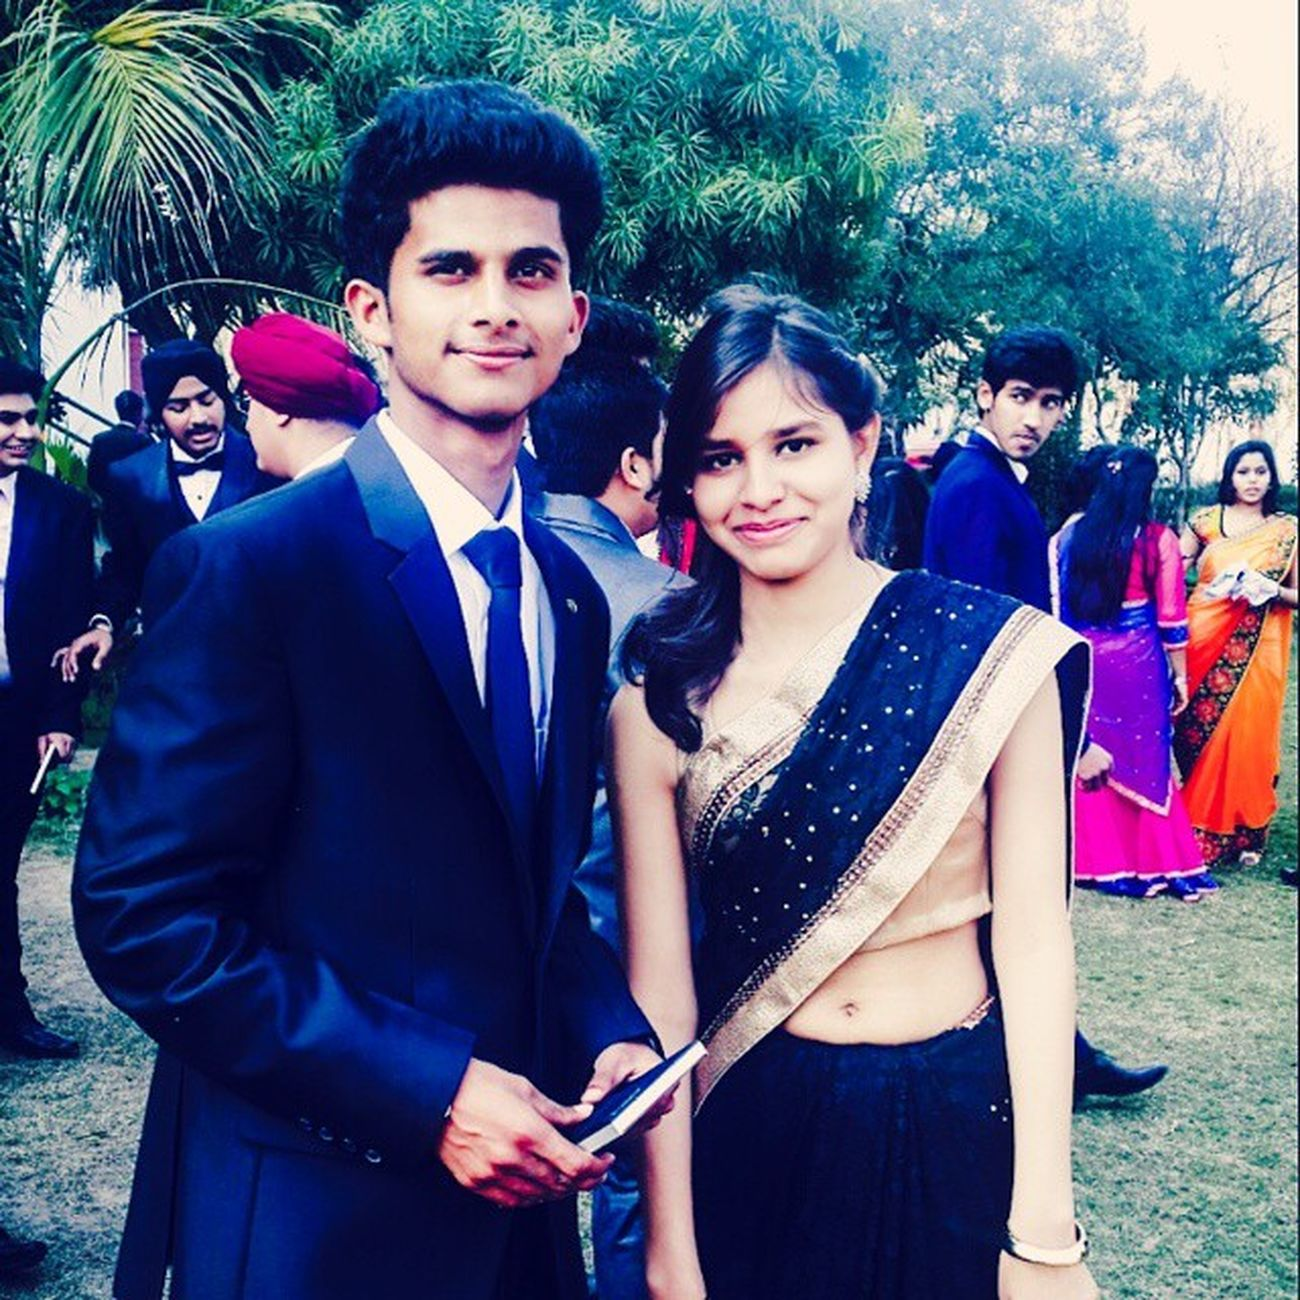 School Farewell Party 2015  Awesome Fun Friends Teachers Class12th Dpsmbd DPS Moradabad Memorableday Memories Unforgettable Time School Formals February POTD Instaclick Instafun India